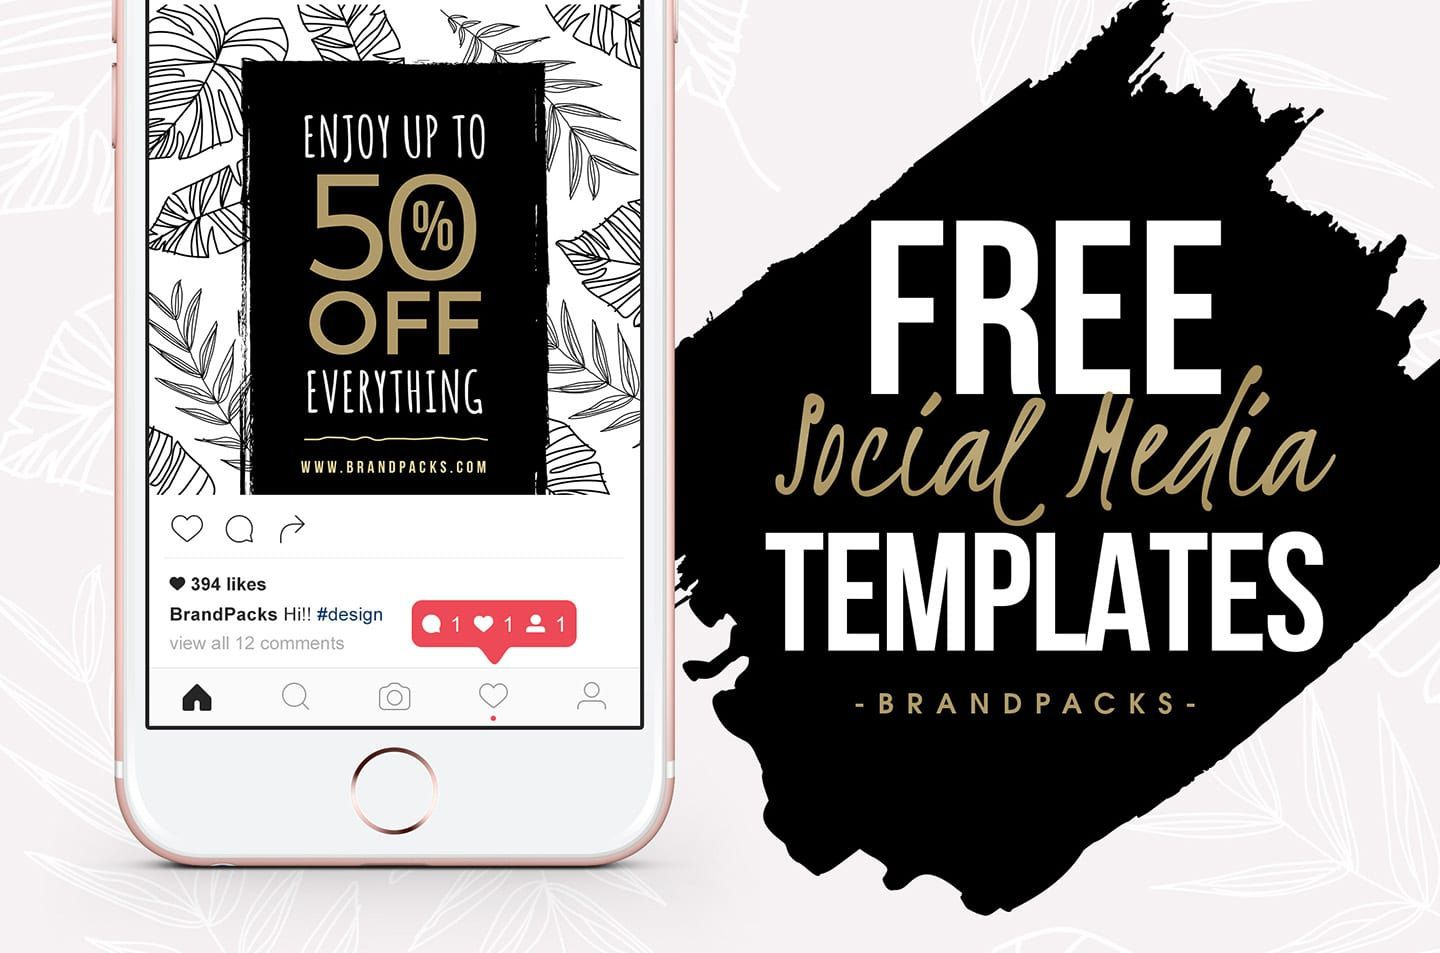 007 Wondrou Free Social Media Template Picture  Templates Website Design Post Download For PowerpointFull